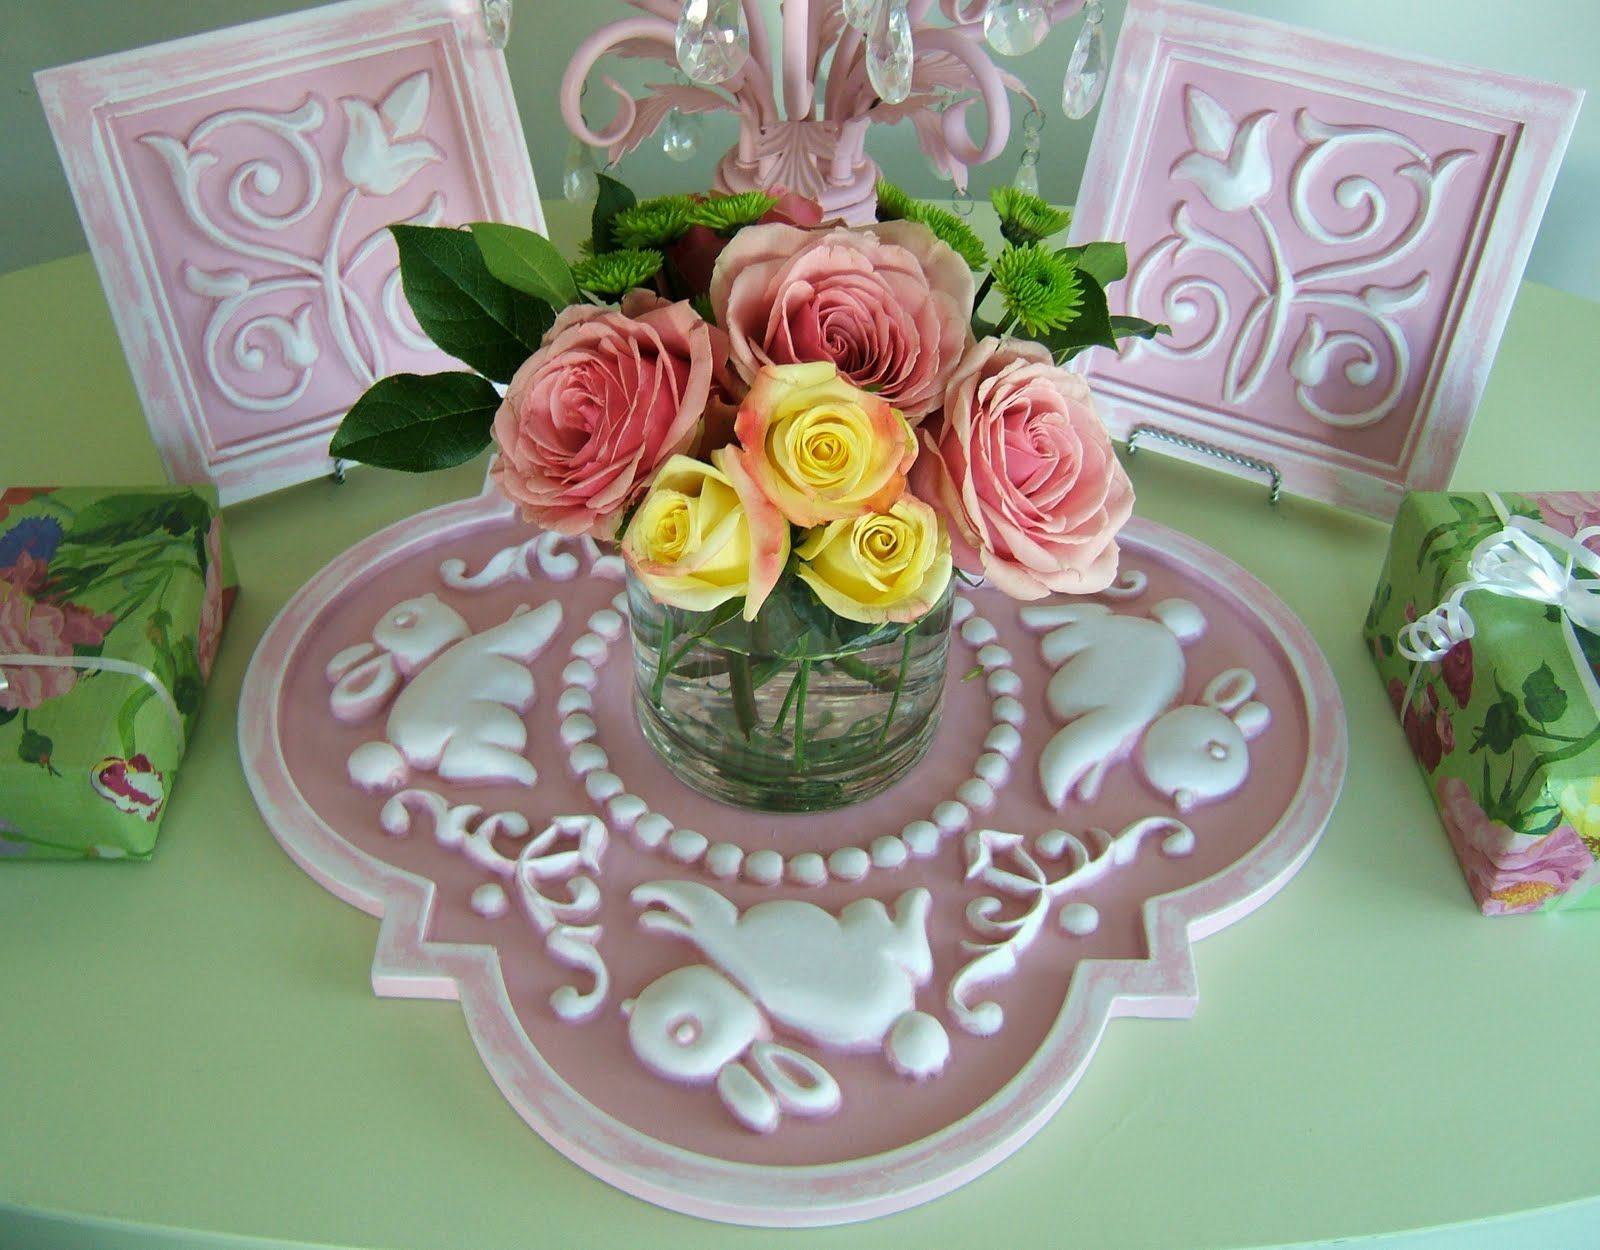 Baby Shower Centerpieces | MARIE RICCI COLLECTION: Ceiling Medallions as Centerpieces